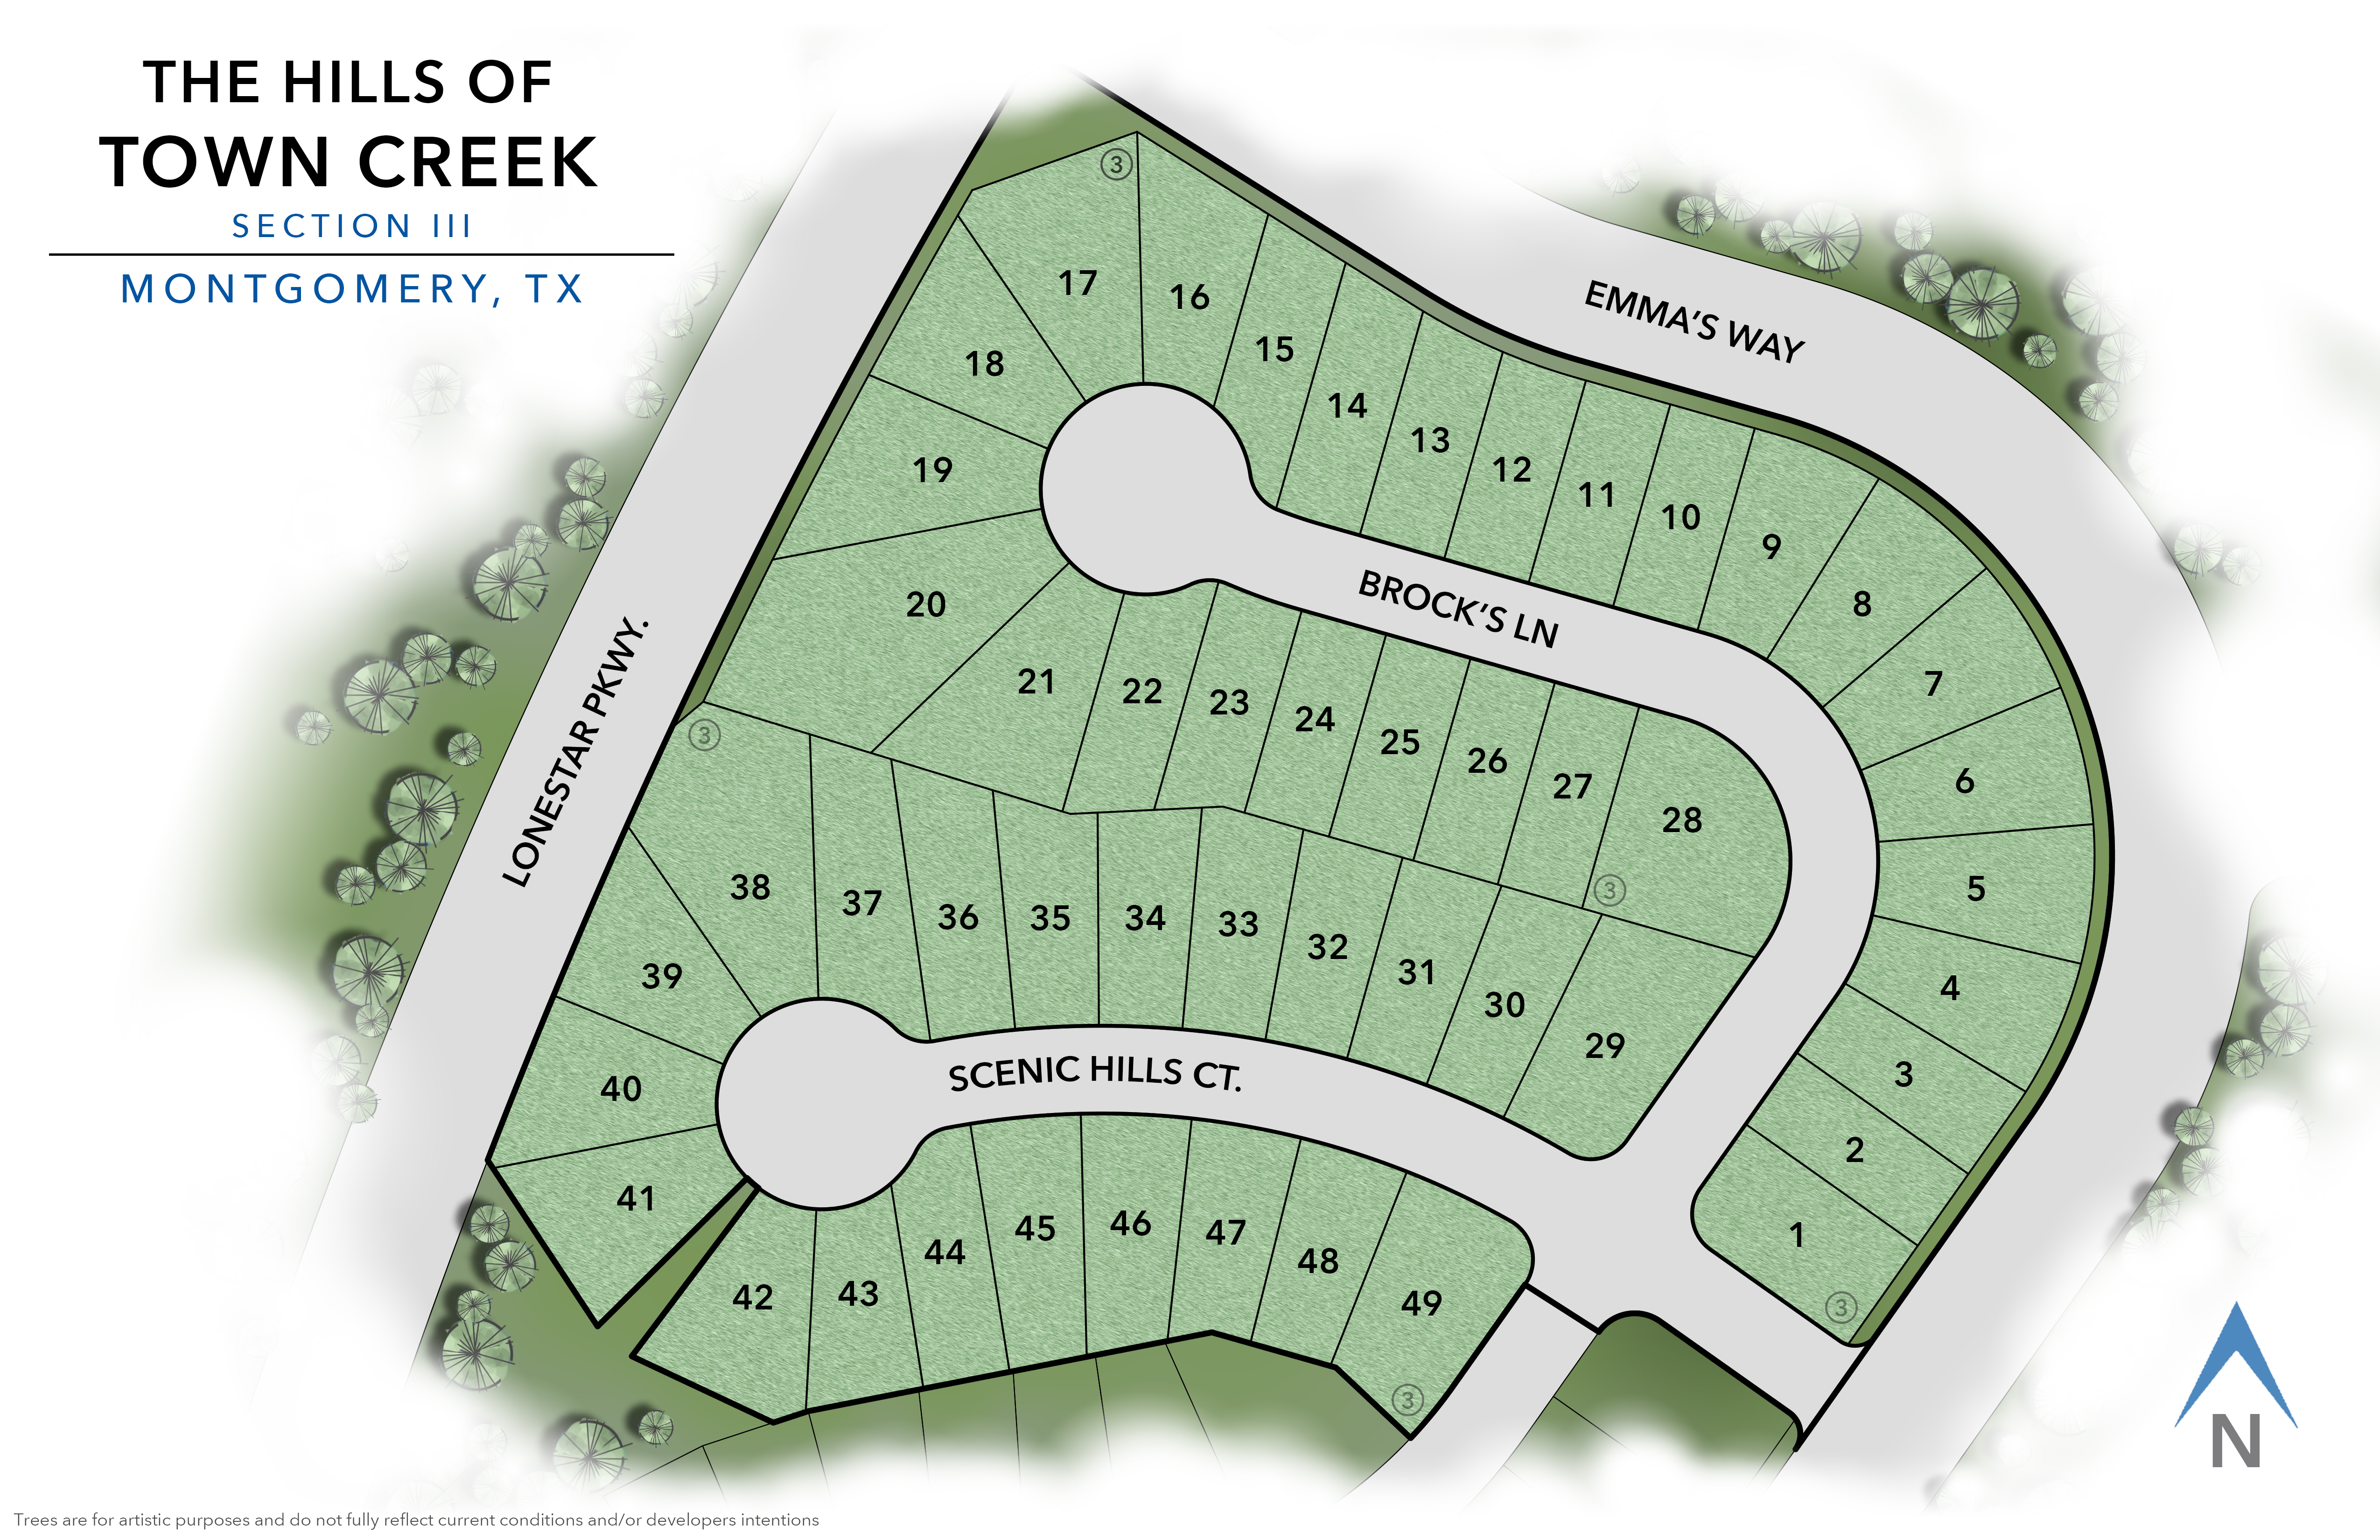 Montgomery, TX The Hills of Town Creek New Homes from Stylecraft Builders